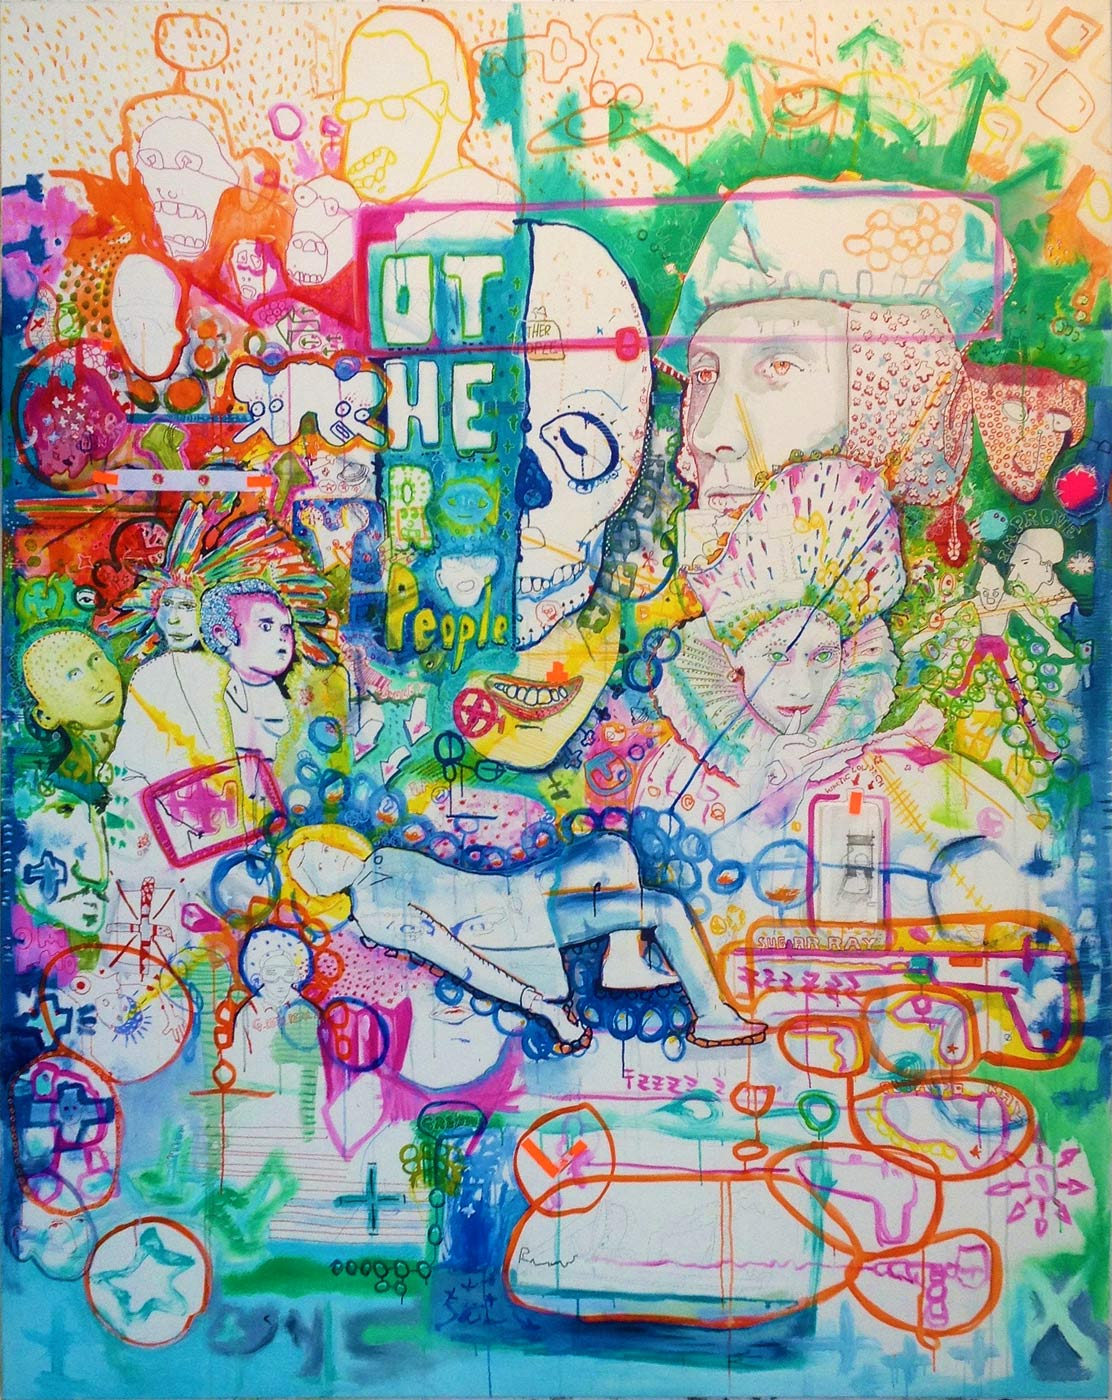 Love & Inspiration Ink and acrylic on canvas ca 250 x 200 cm | © Thomas Steffens 2014